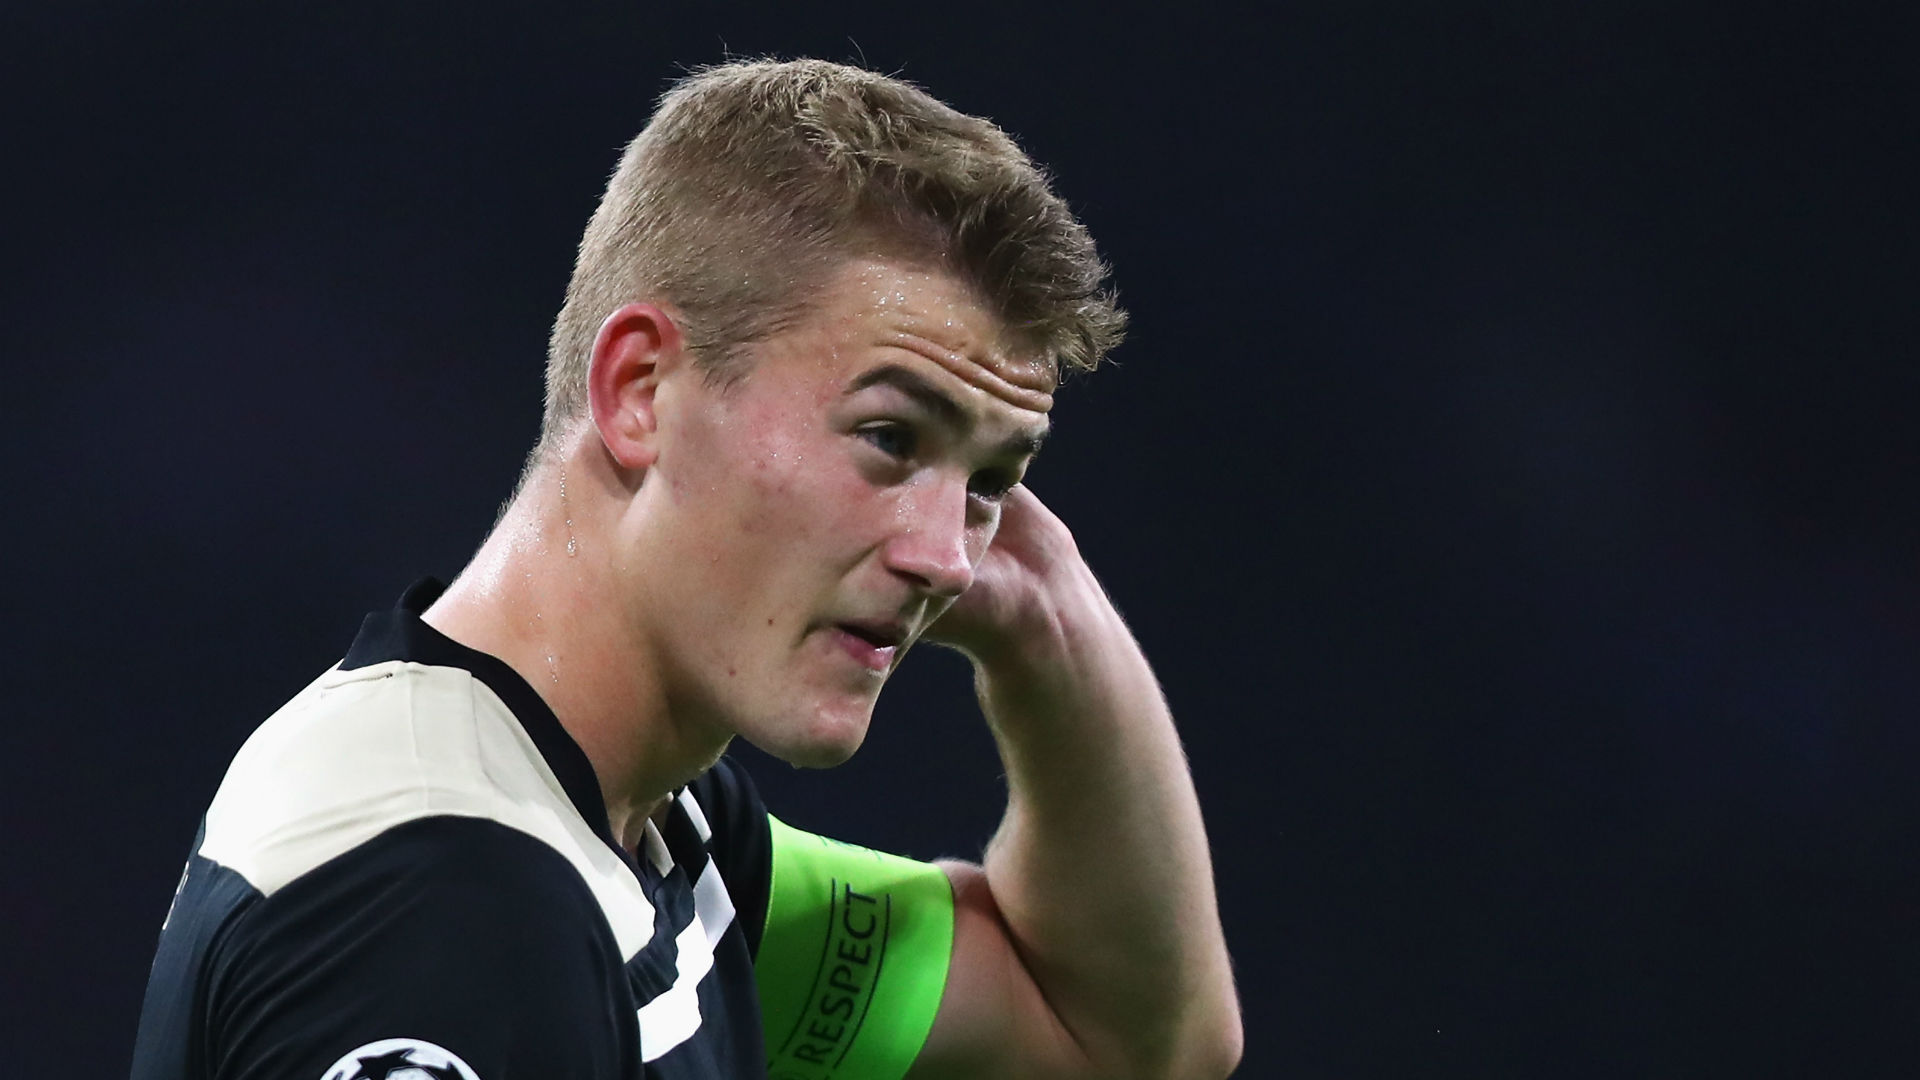 There's nothing to announce – De Ligt dismisses Barca talk